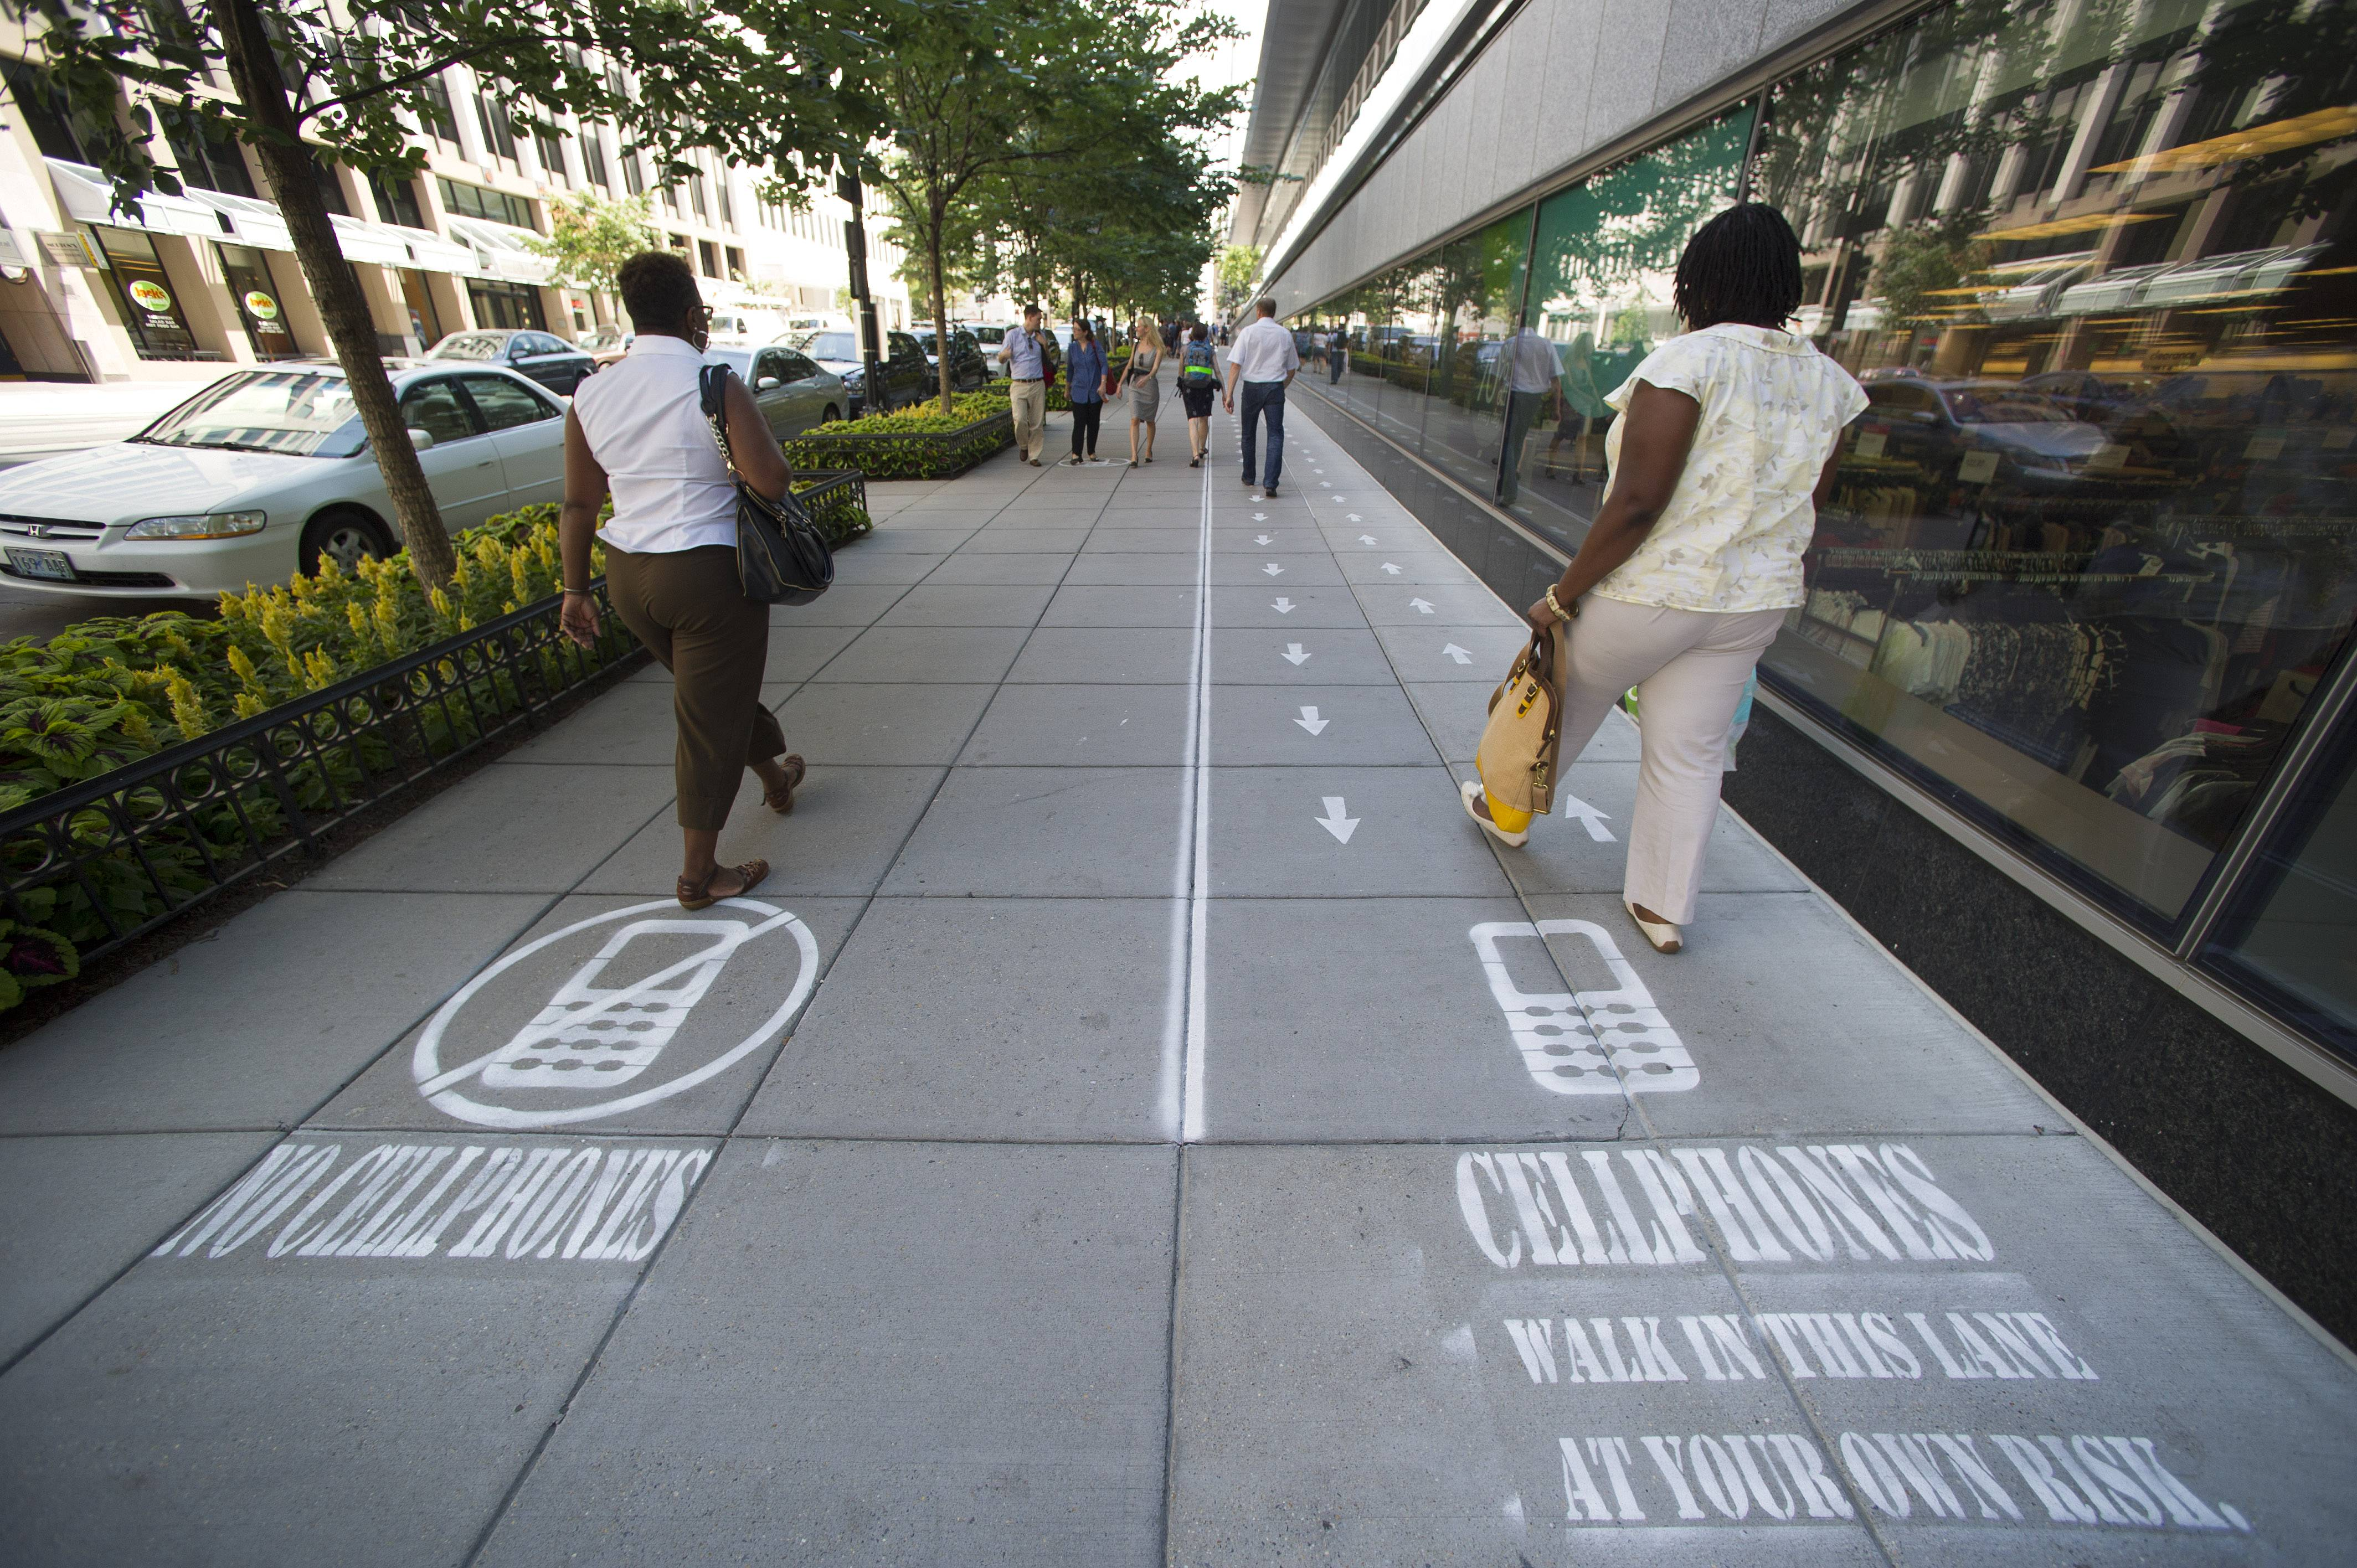 As part of their Mind Over Masses television show, National Geographic divided a one block-long sidewalk into two sections; one for cell phone users and the other for those not using a cell phone in downtown Washington, Thursday, July 17, 2014. The walkway warnings were put there by the brains behind a National Geographic television show as part of a behavioral science experiment.